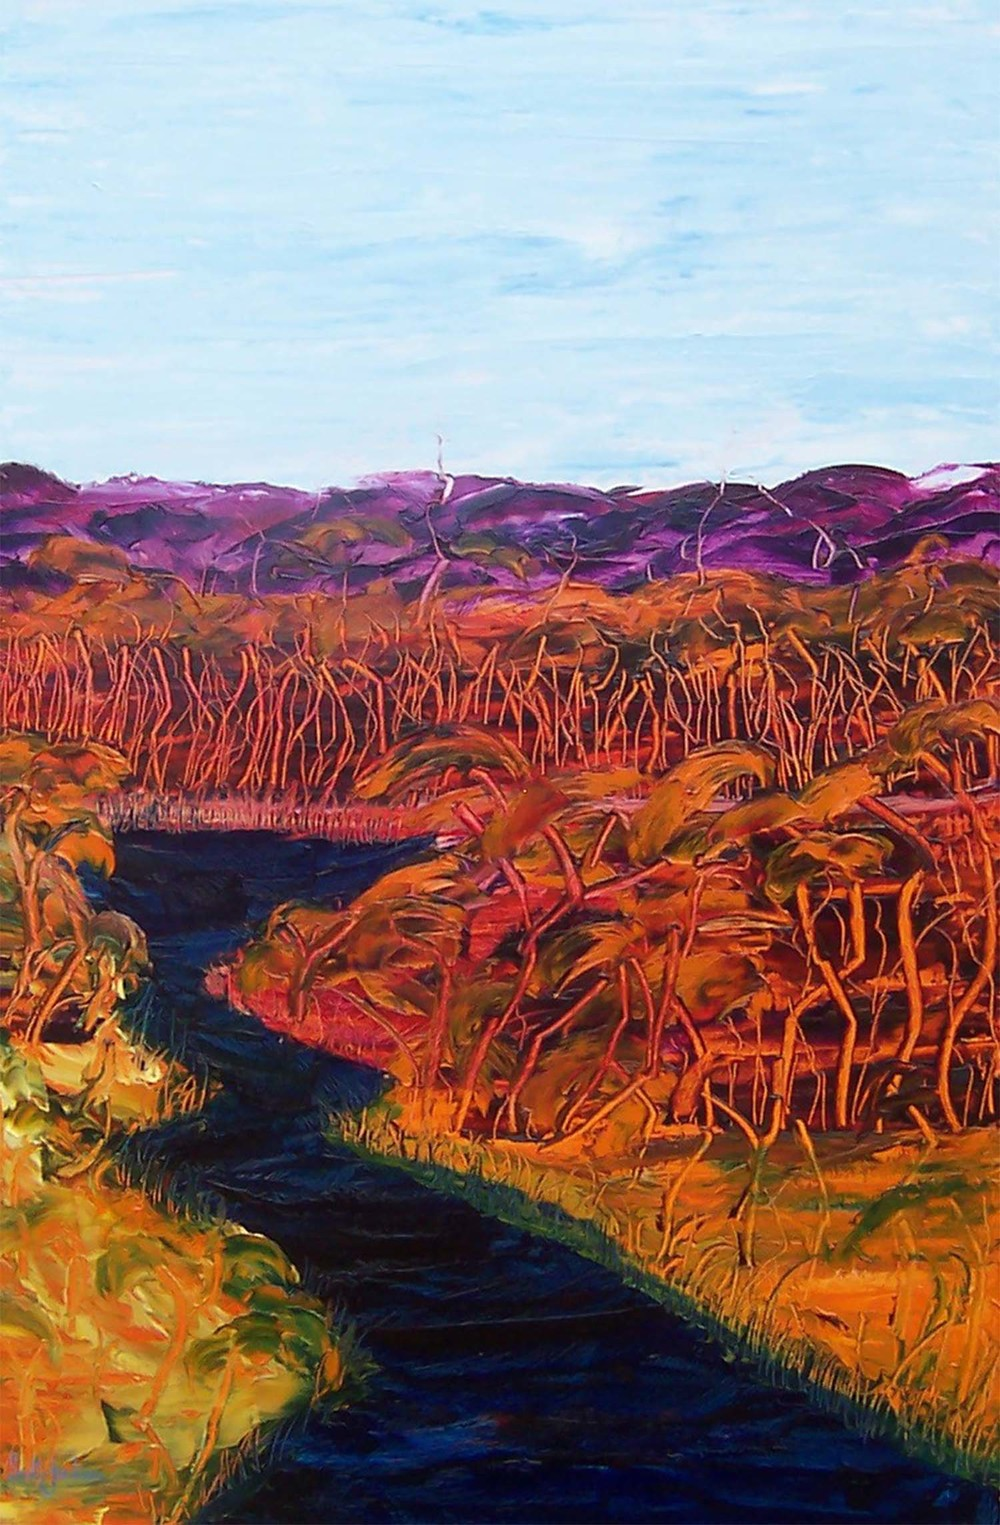 "This rich and textured work represents the striking landscapes of Australia's outback rivers and bush landscape... always rich and visually dynamic.  Title "" River and Bush "", 90 cm x 60 cm, ref 0371, oil on board, ready to hang,  $860 AUD"